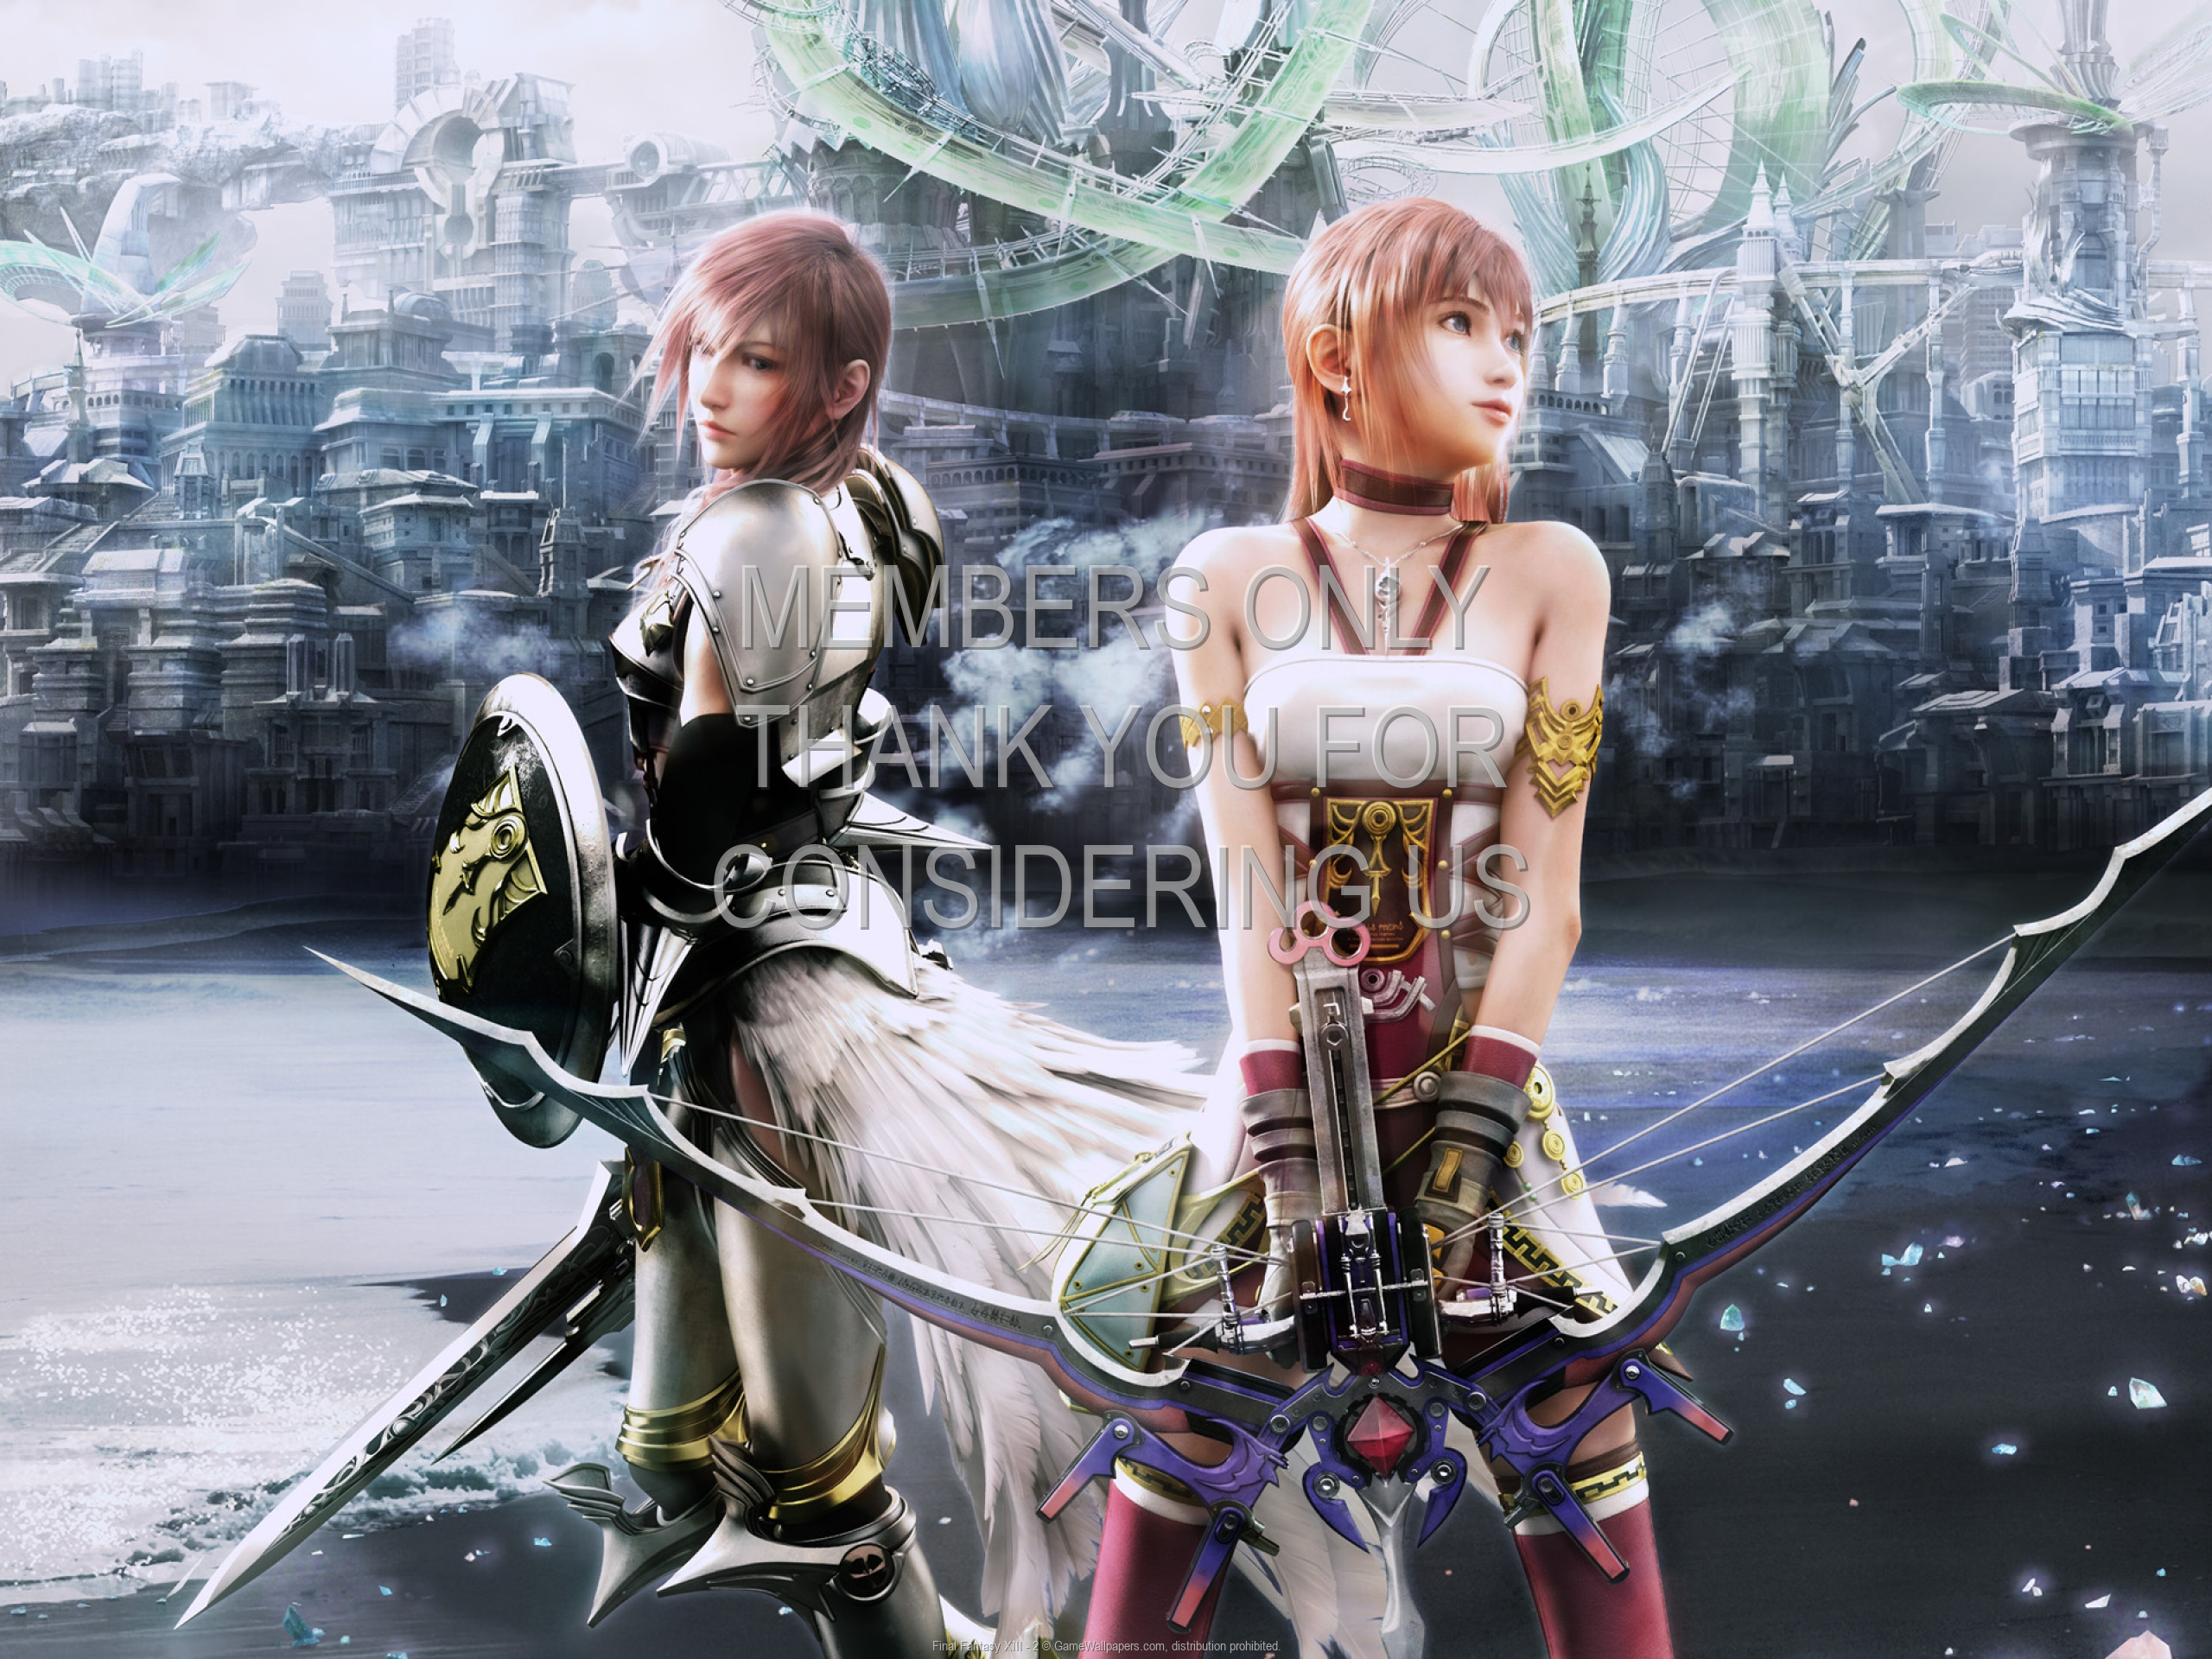 Final Fantasy XIII - 2 1920x1080 Mobile wallpaper or background 01